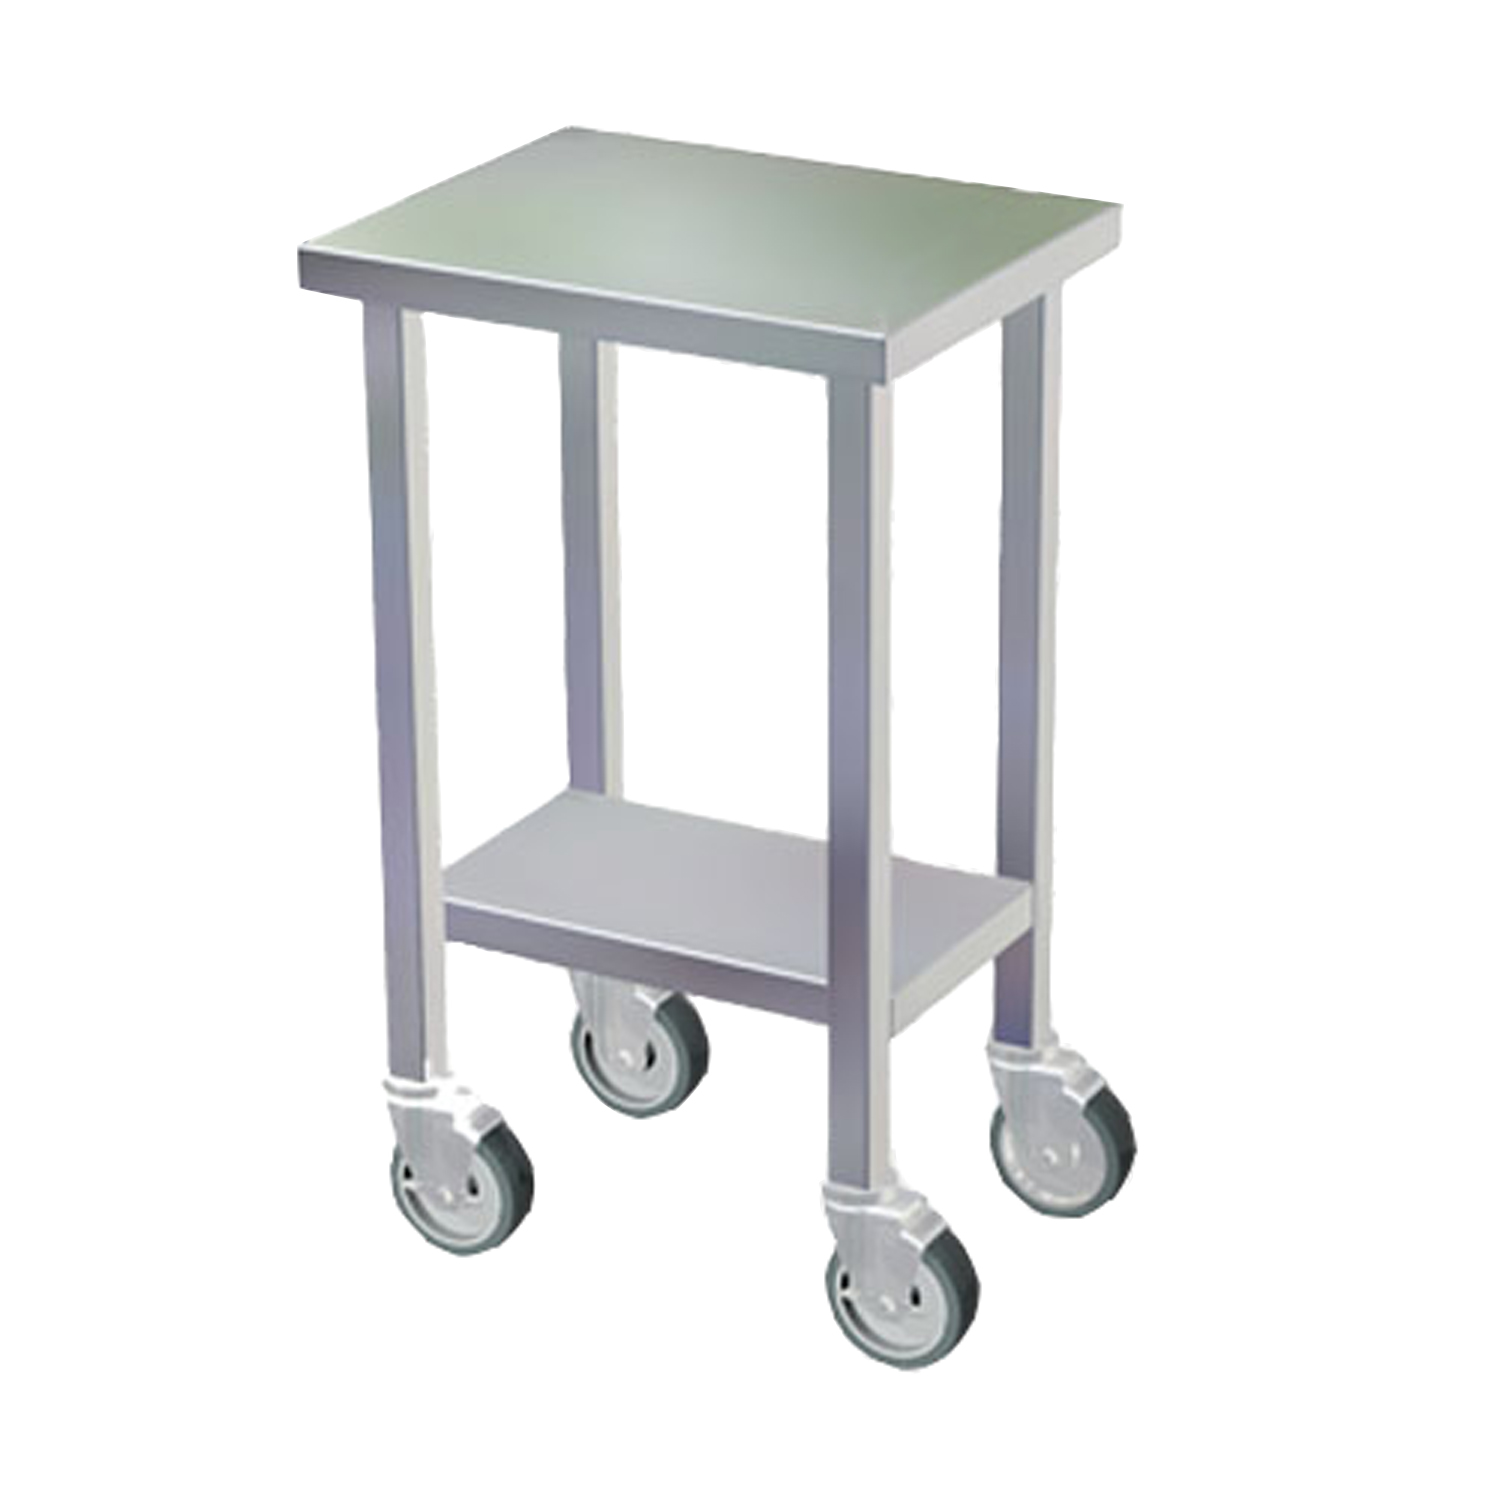 Stainless Steel Mobile Utility Stand